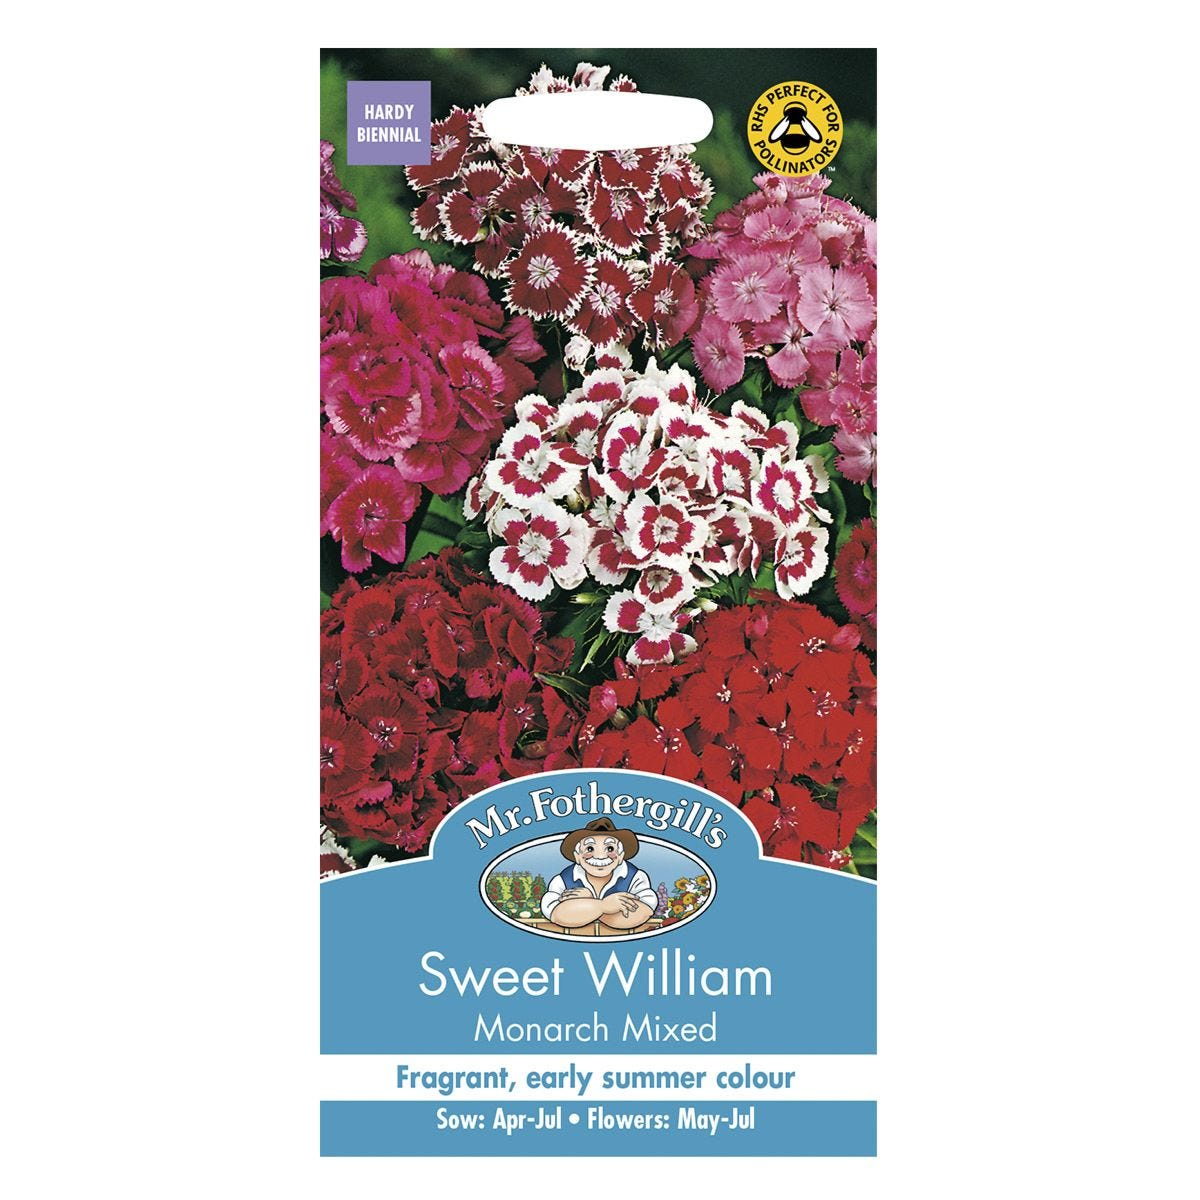 Mr Fothergill's Sweet William Monarch Mixed Seeds